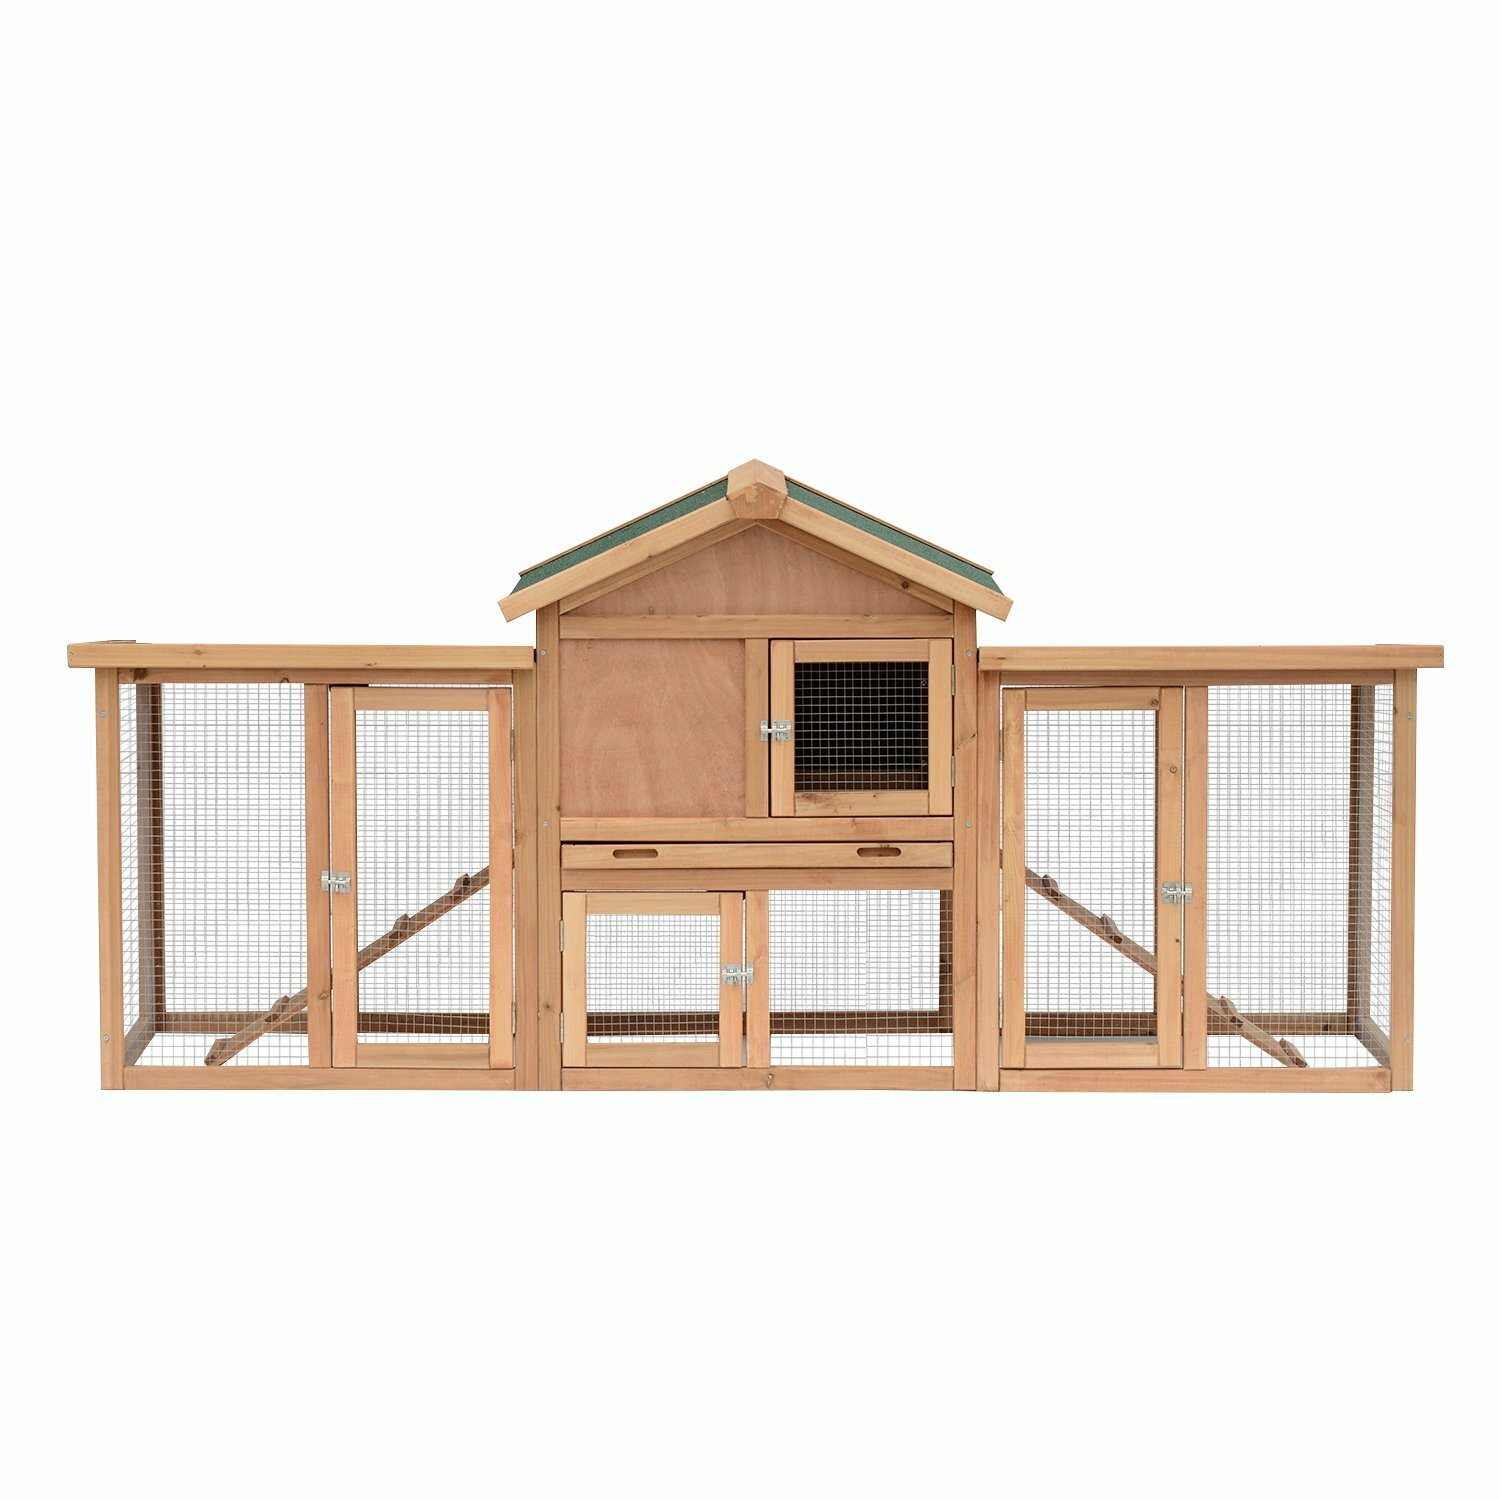 Pet Supplies Professional Sale Chicken Coop And Run Hen House Poultry Nest Box Rabbit Hutch With A Run Pretty And Colorful